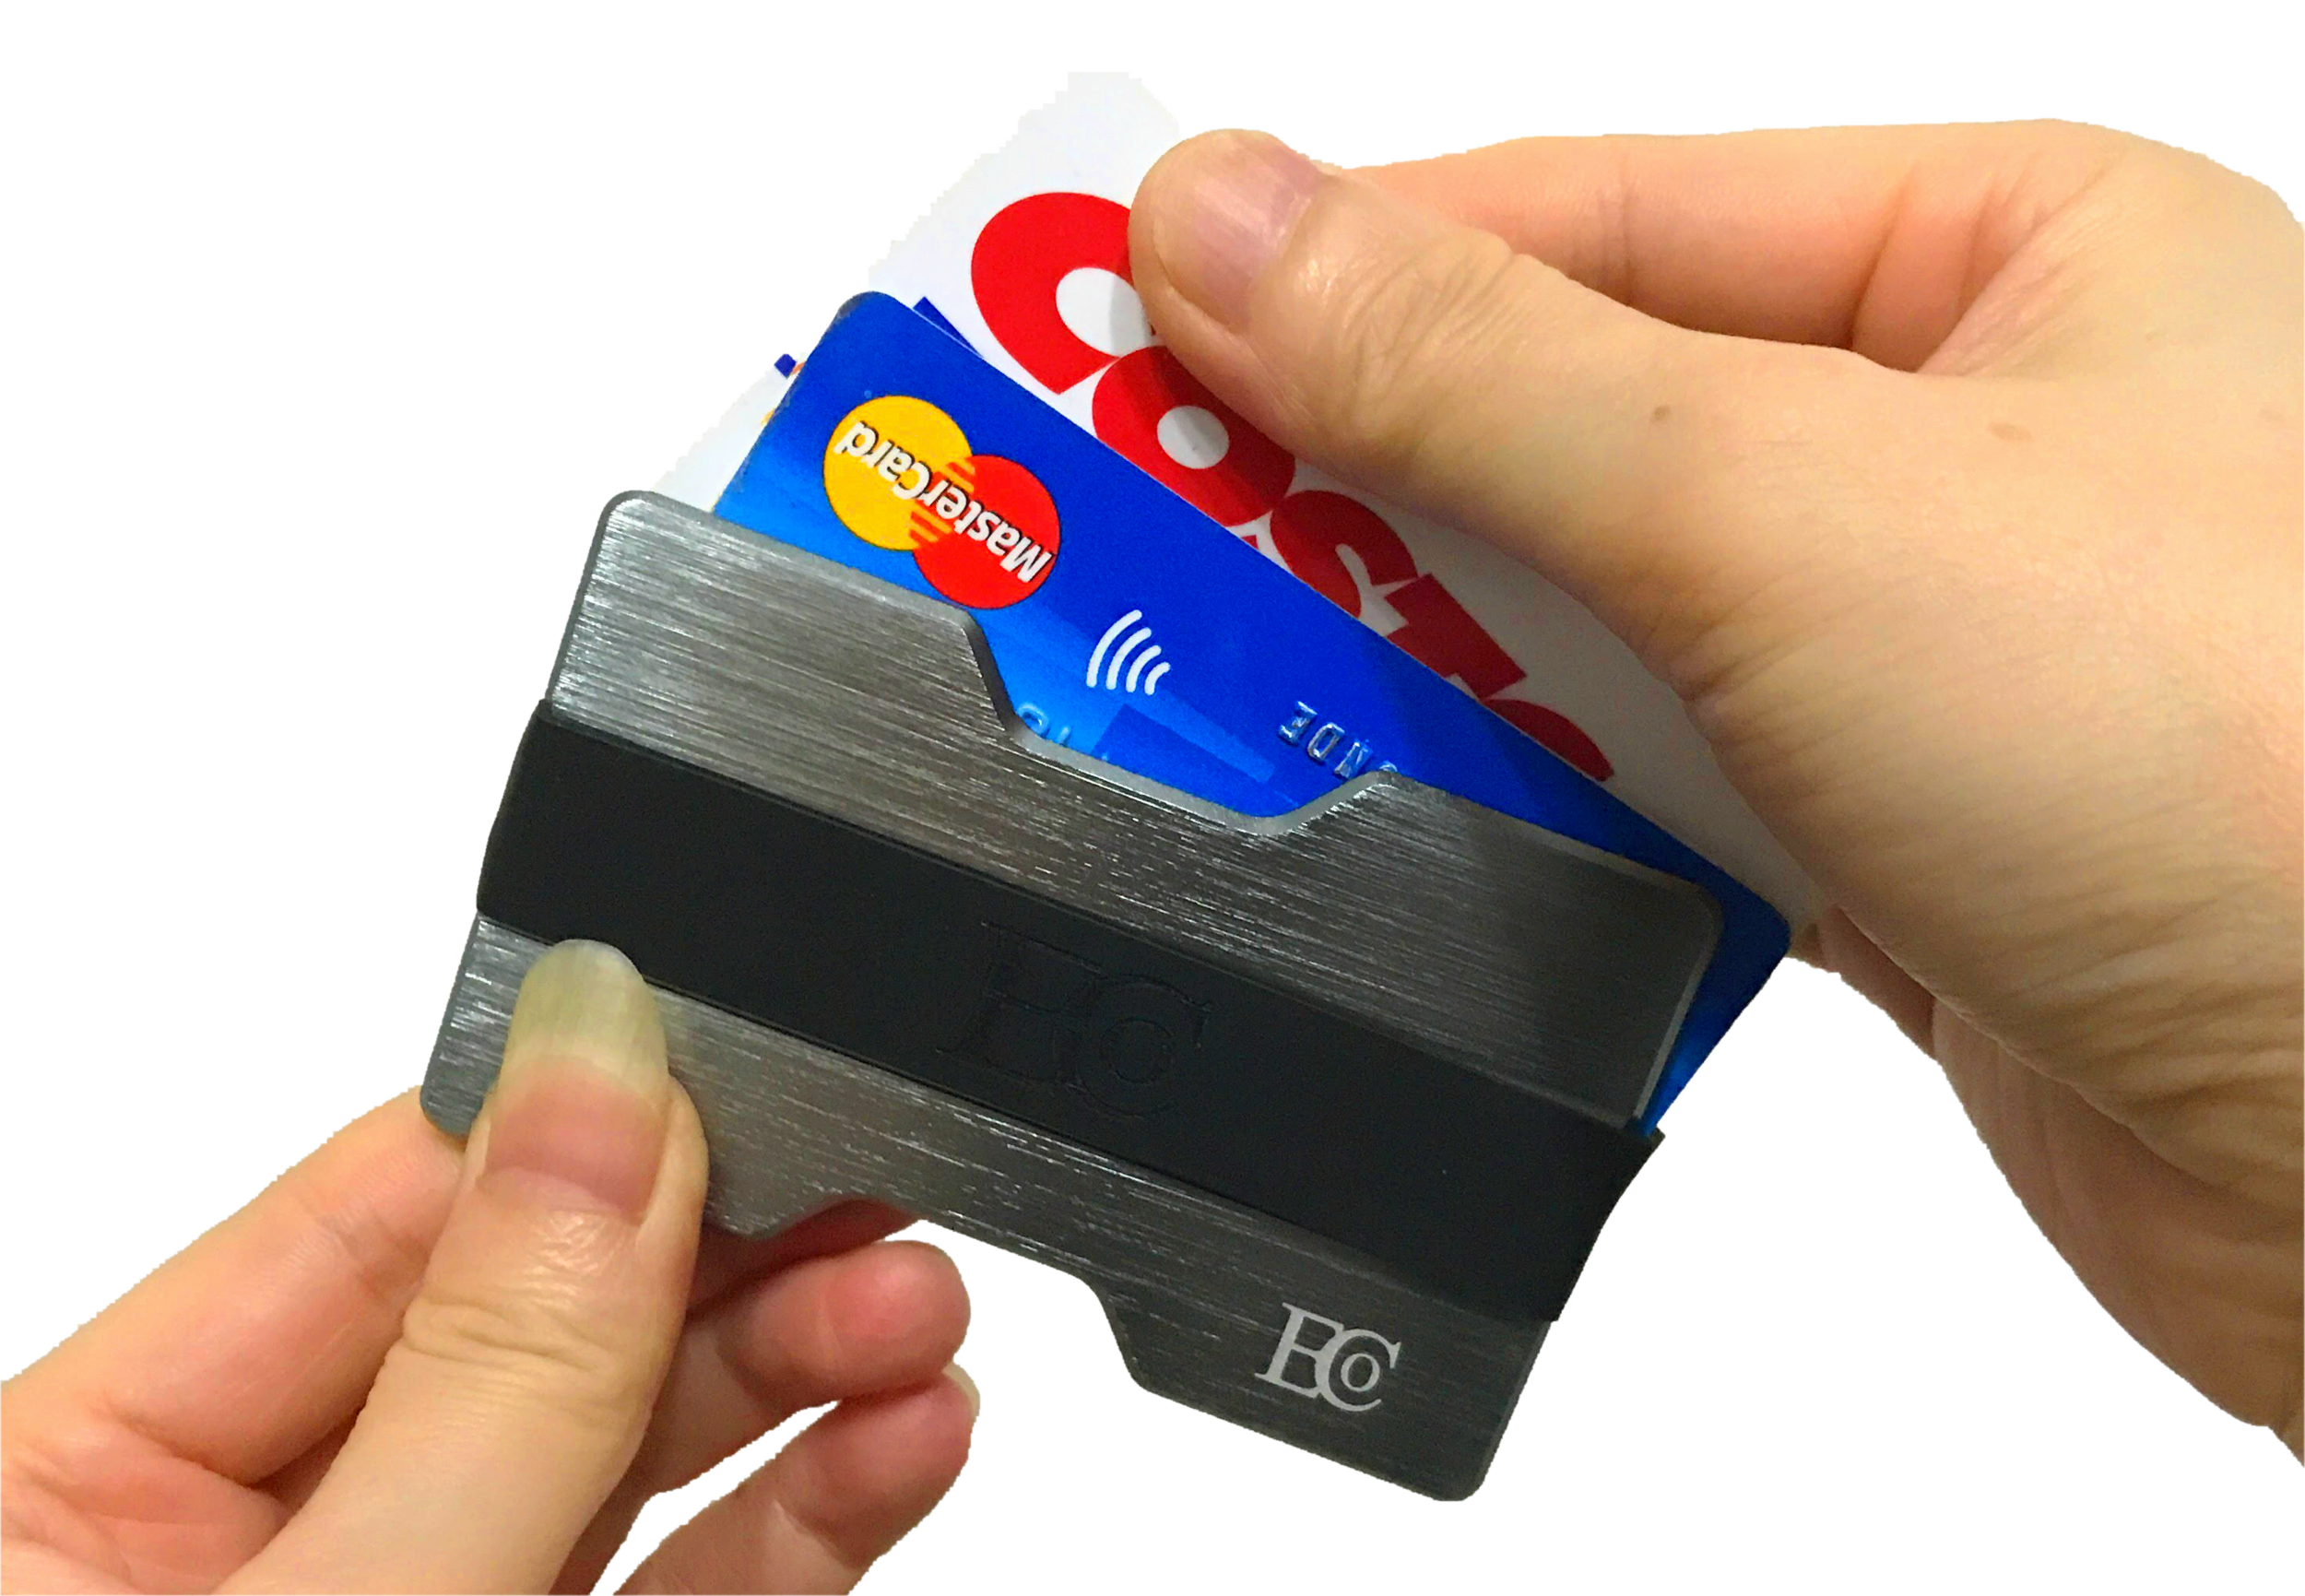 LINQZ_hand_taking_card_out.png